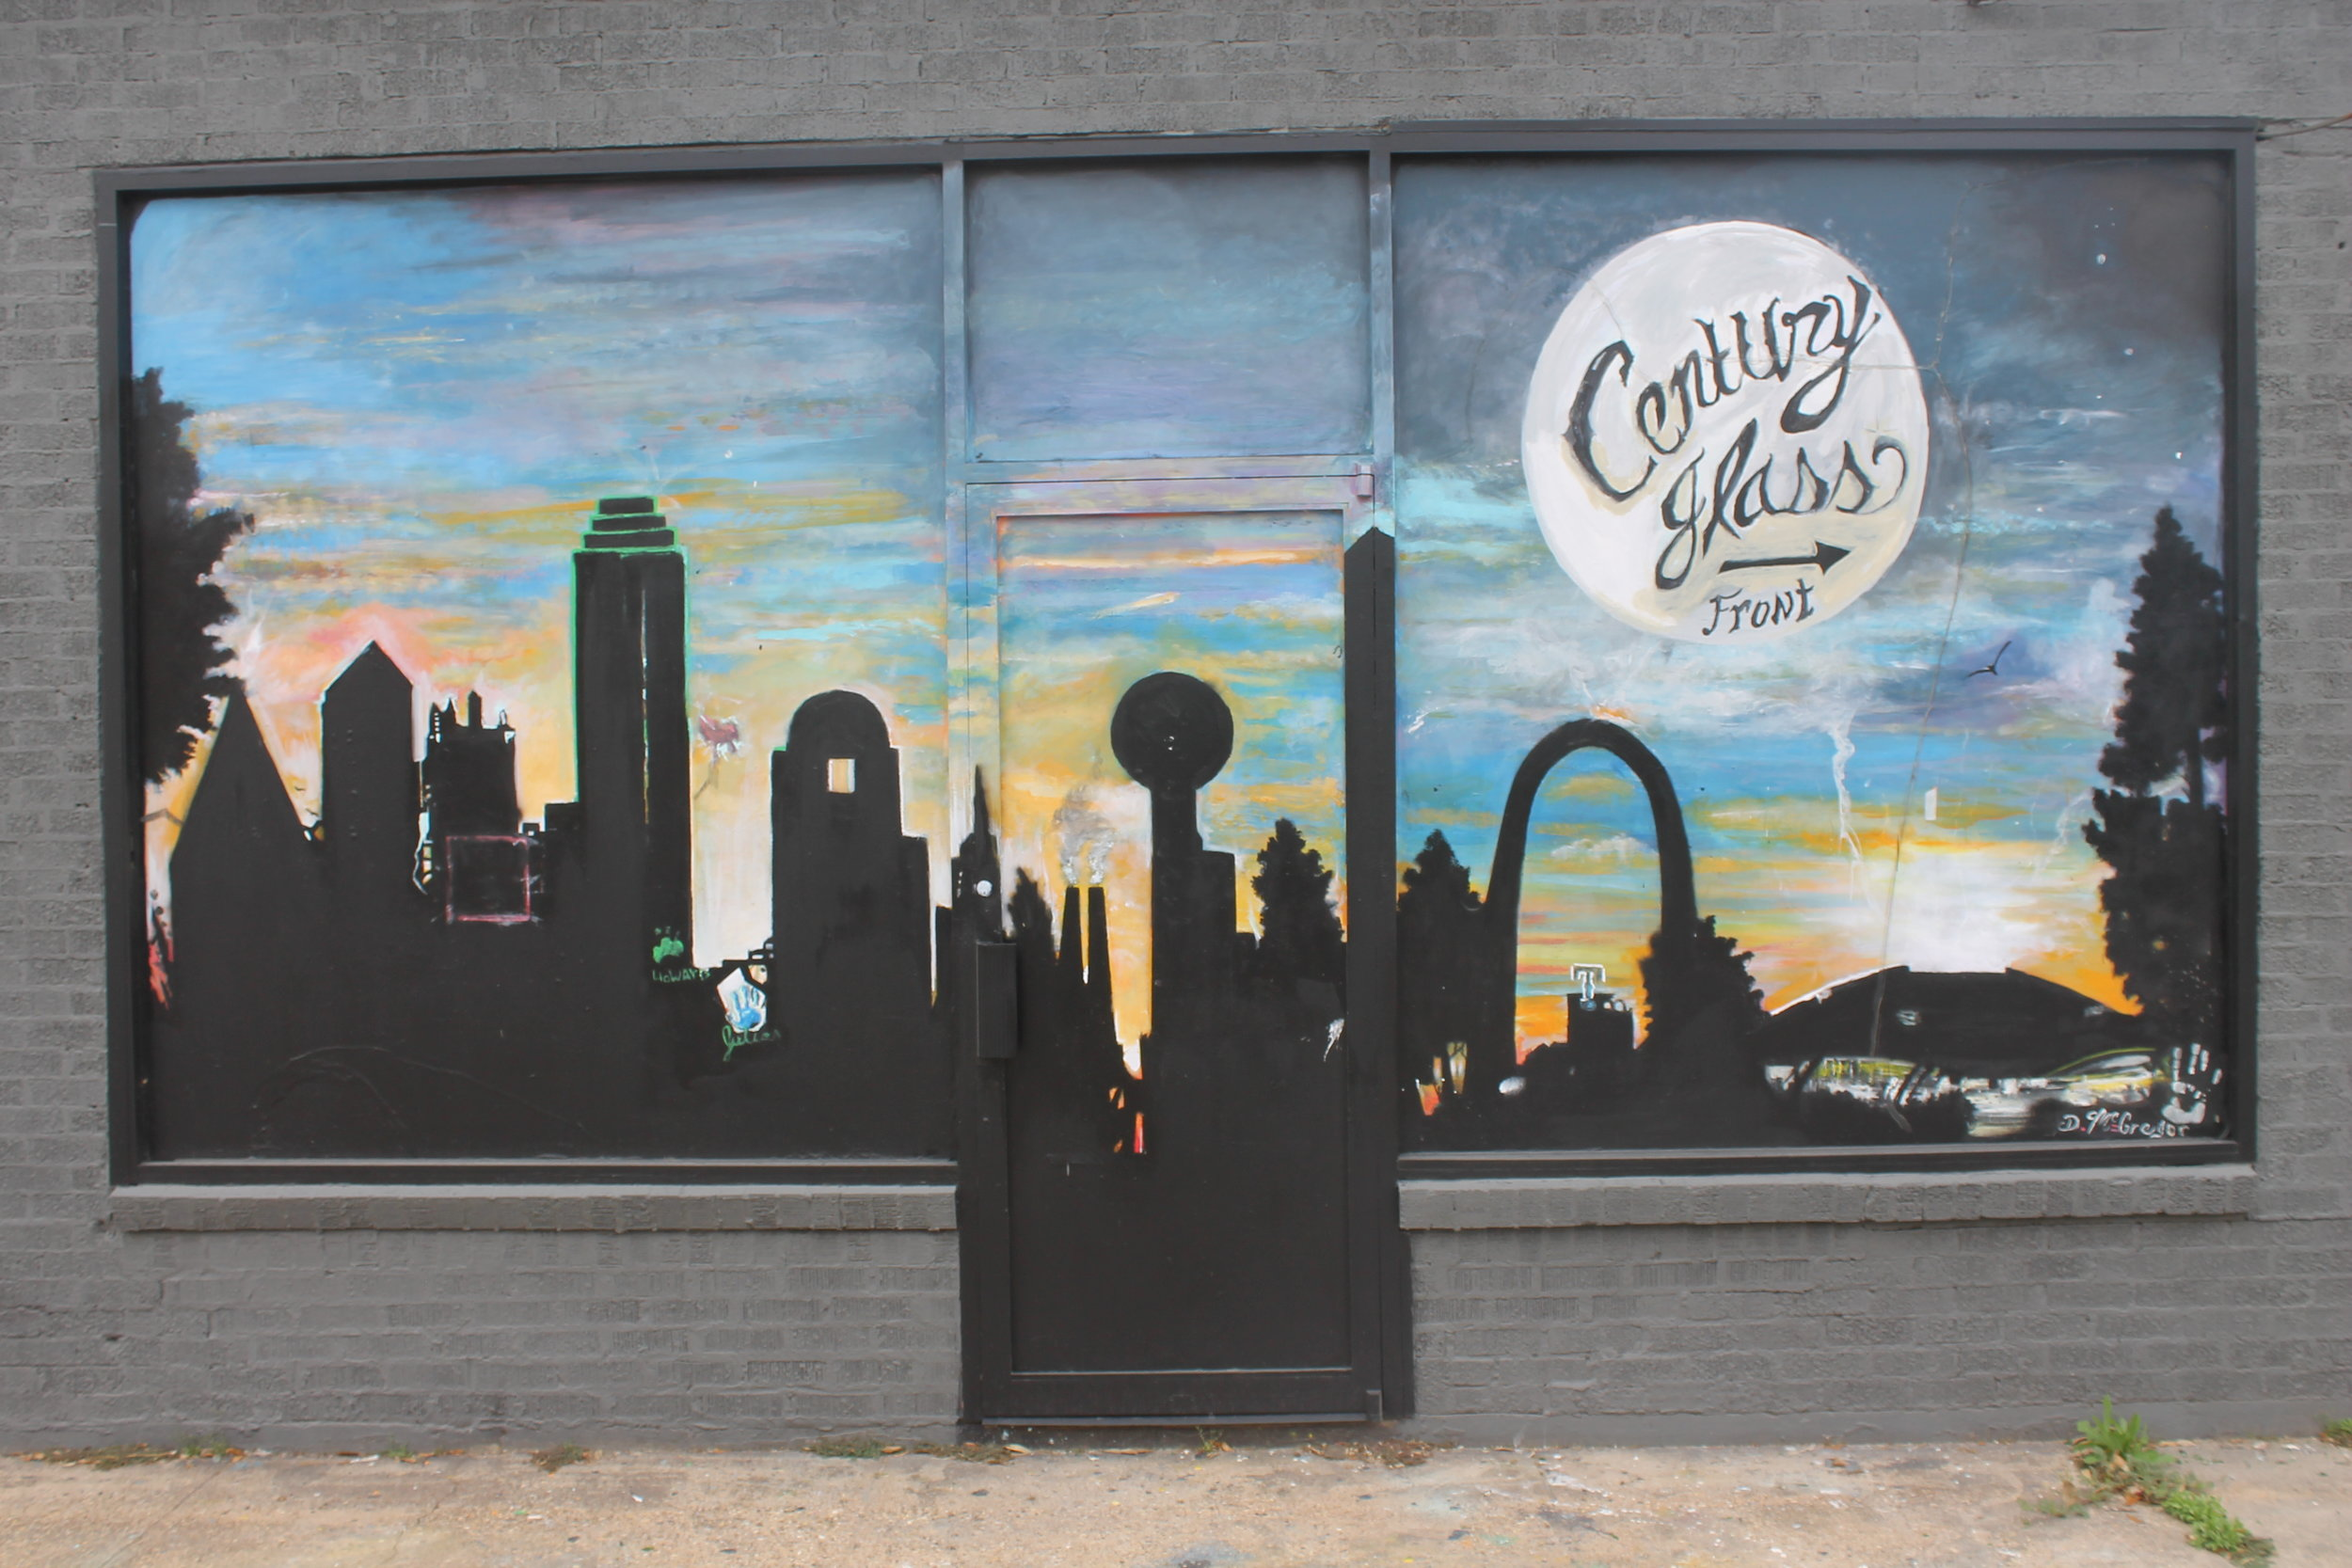 Dallas and outerspace take focus on the mural painted on the Centrury Glass building in Old East Dallas.